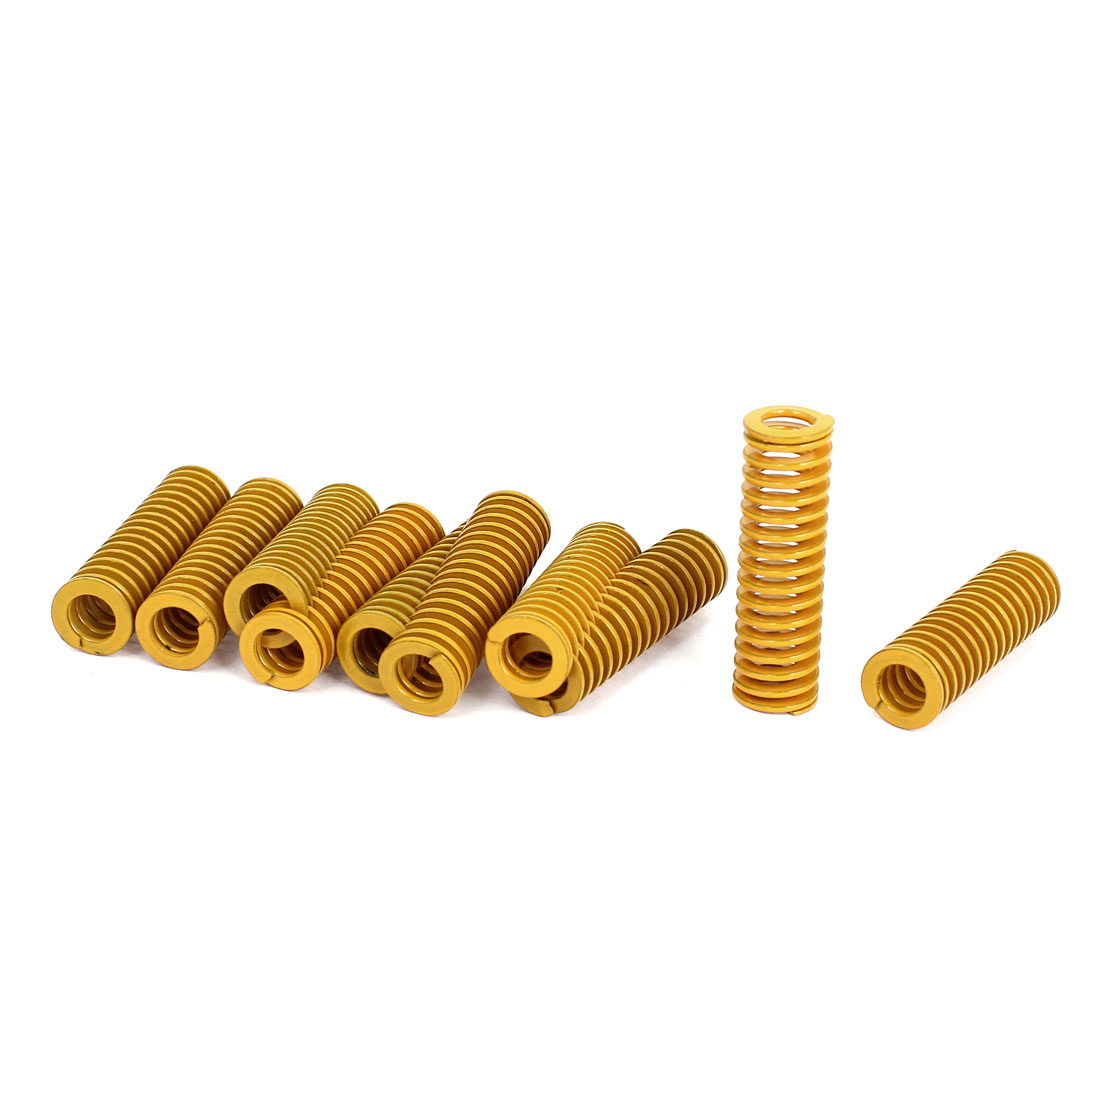 12mm OD 40mm Long Light Load Stamping Compression Mold Die Spring Yellow 10pcs